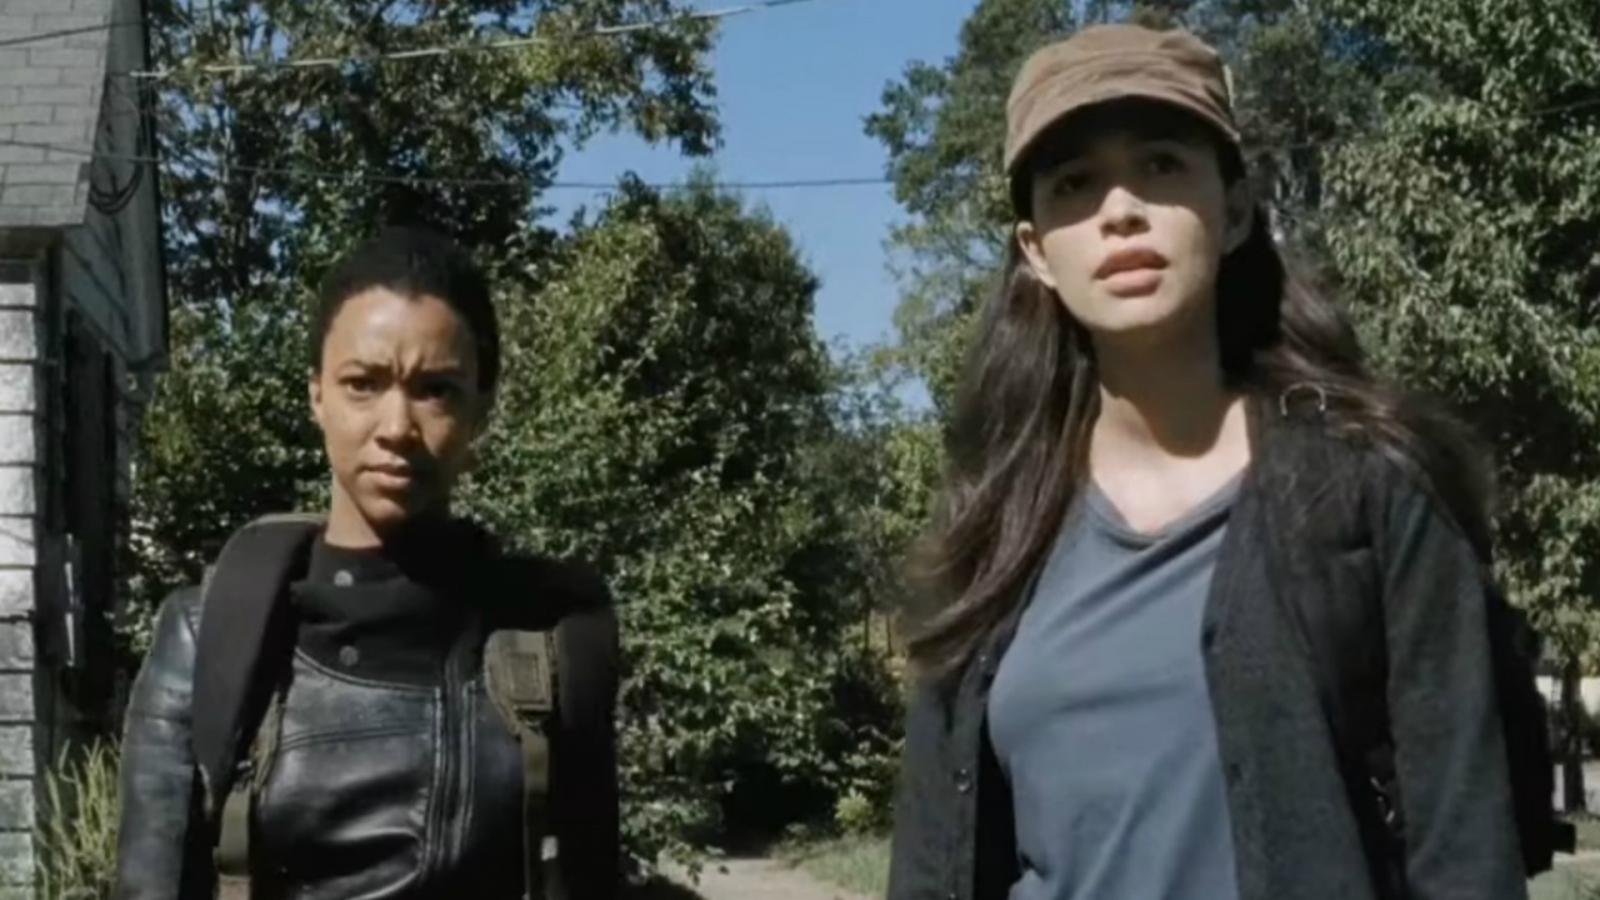 'The Walking Dead': [SPOILER] Comes Out As Gay To Maggie